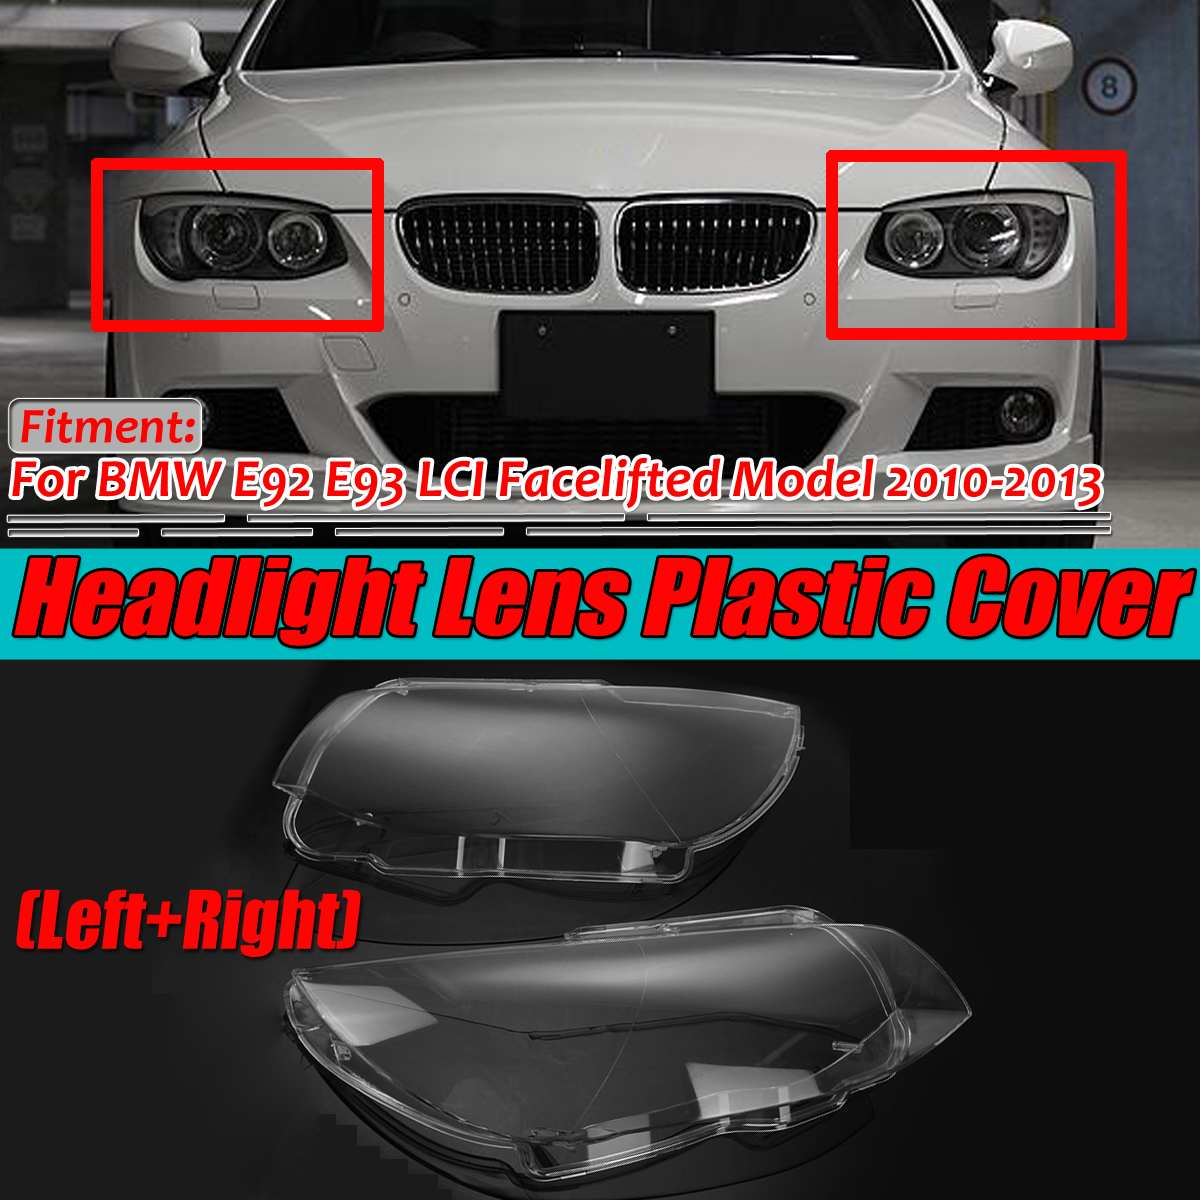 OEM BMW 5-series M-sport E60 E61 front bumper LEFT headlight washer cover cap